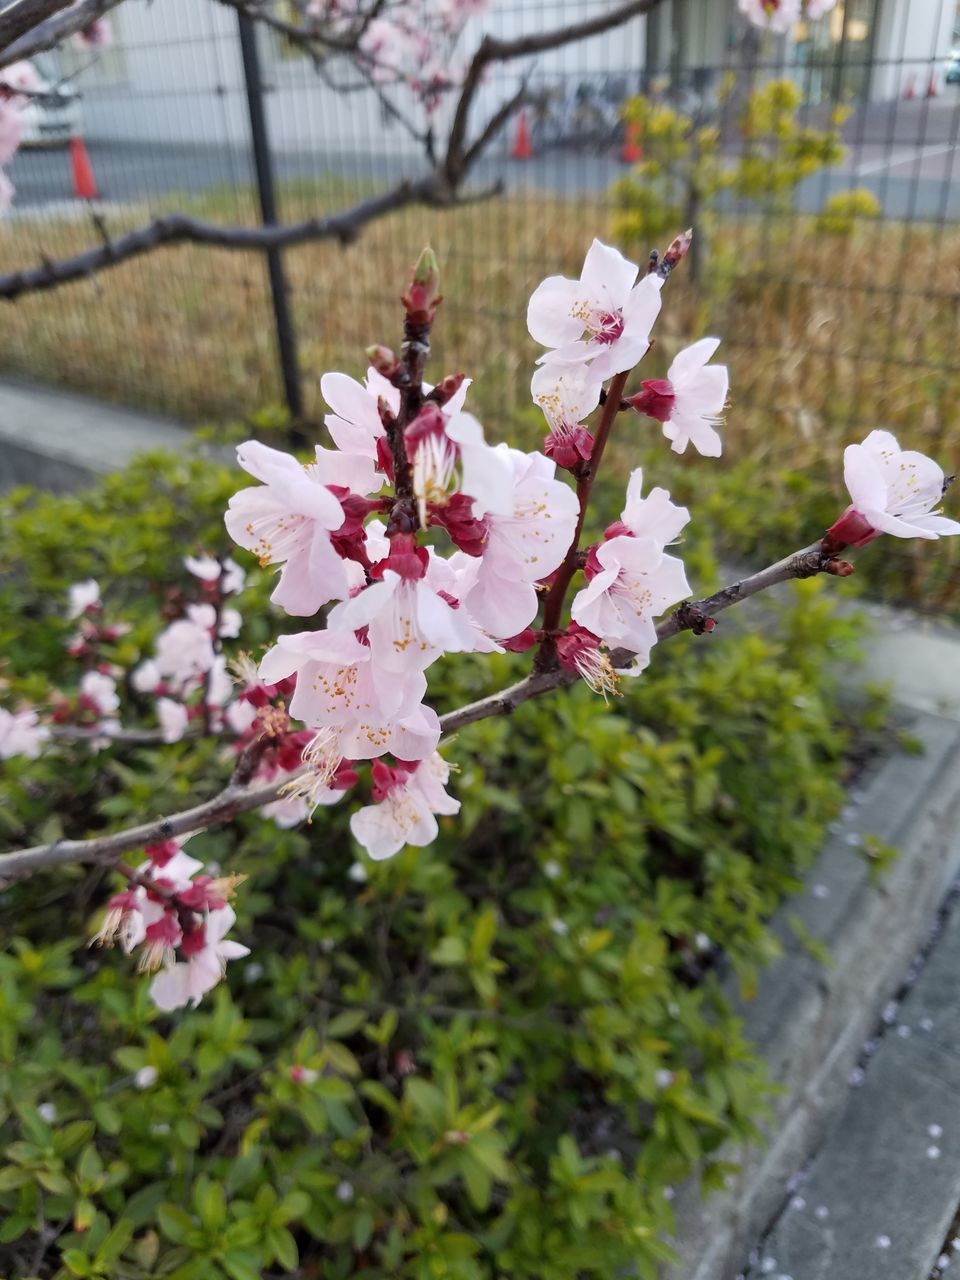 flower, fragility, beauty in nature, freshness, blossom, springtime, growth, nature, petal, botany, day, white color, flower head, focus on foreground, pink color, no people, tree, stamen, apple blossom, pollen, outdoors, branch, close-up, blooming, plum blossom, plant